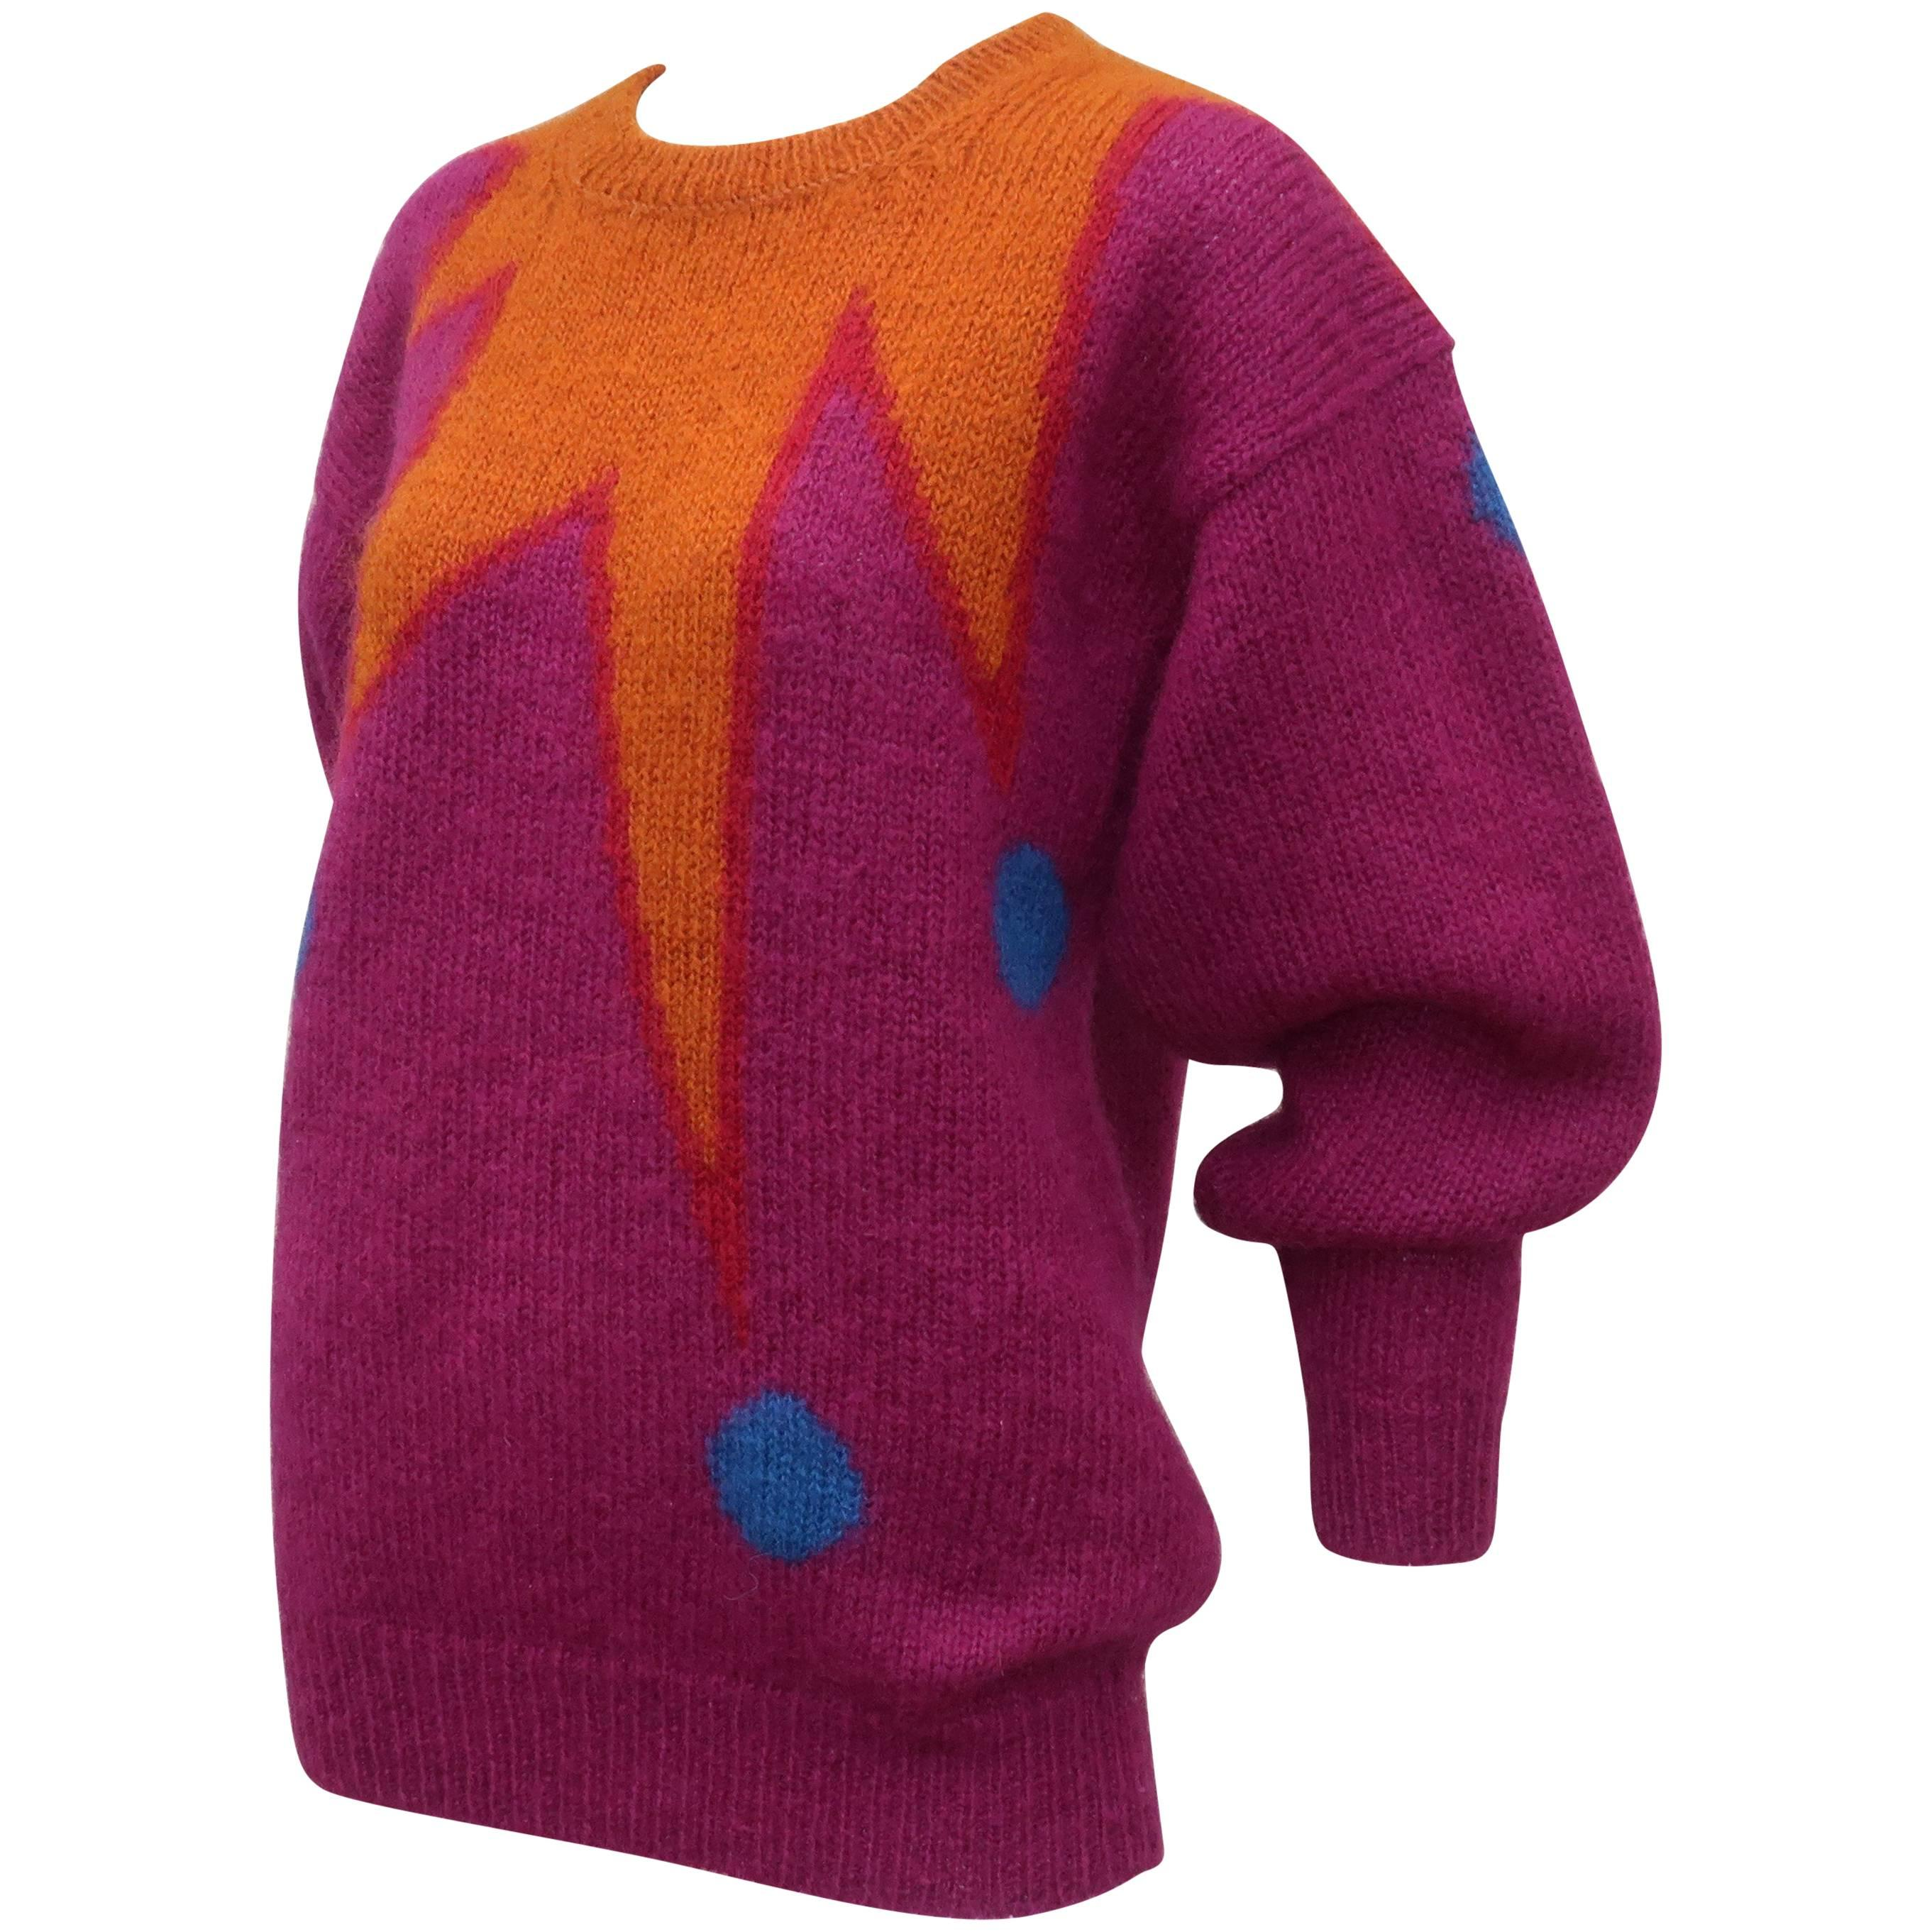 1980's Colorful Chunky Mohair Sweater With Whimsical Graphics